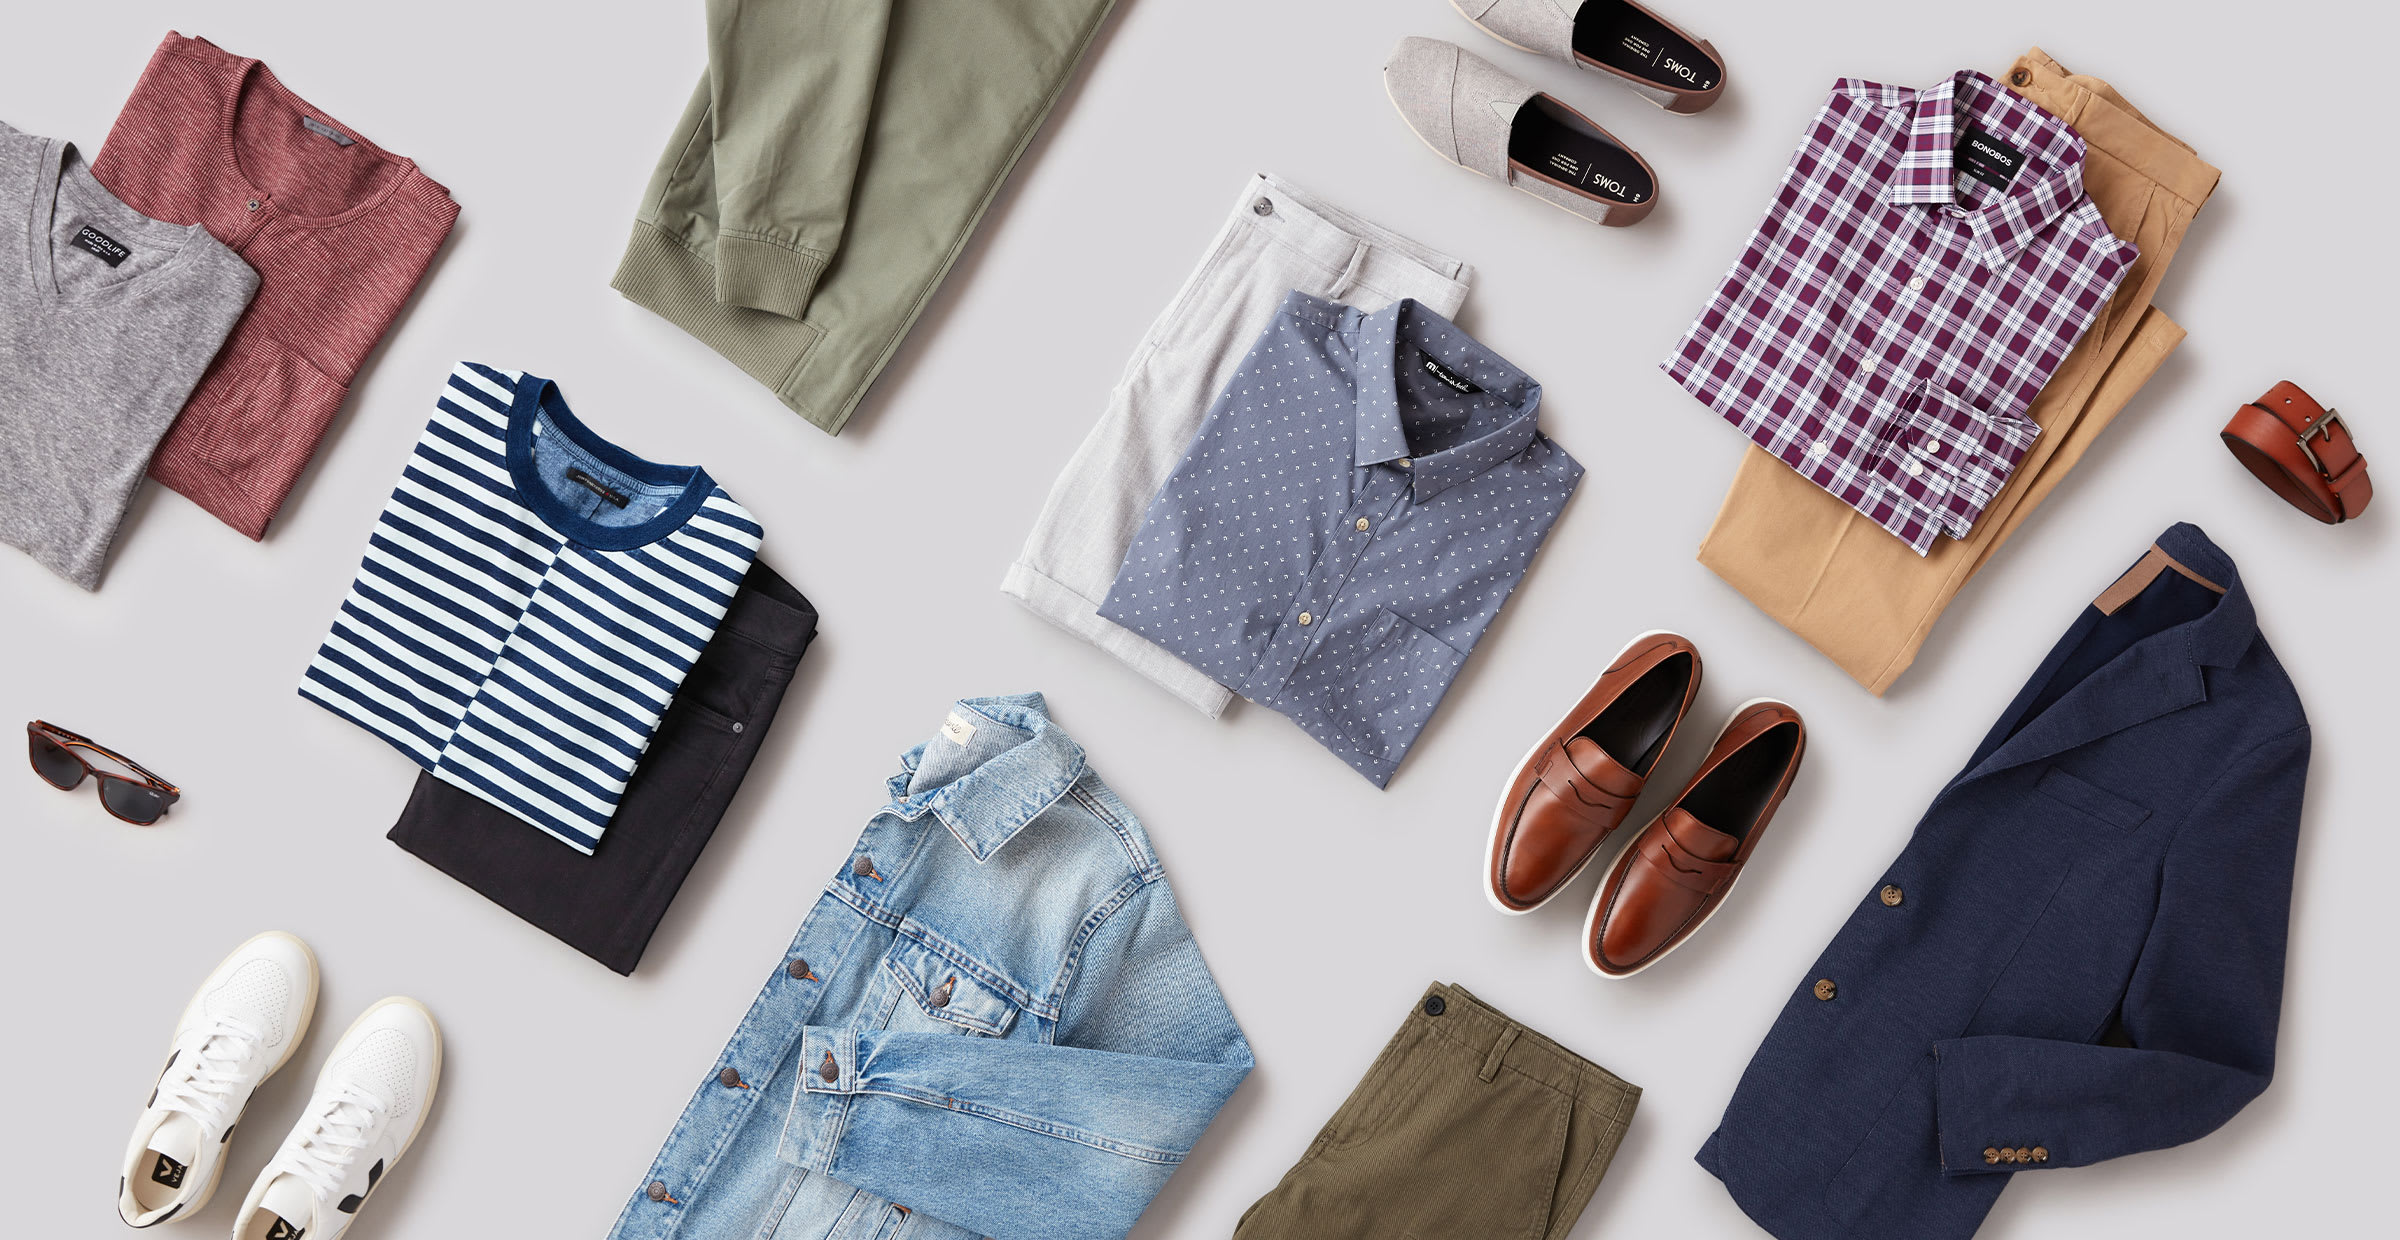 Men's sustainable clothing pieces